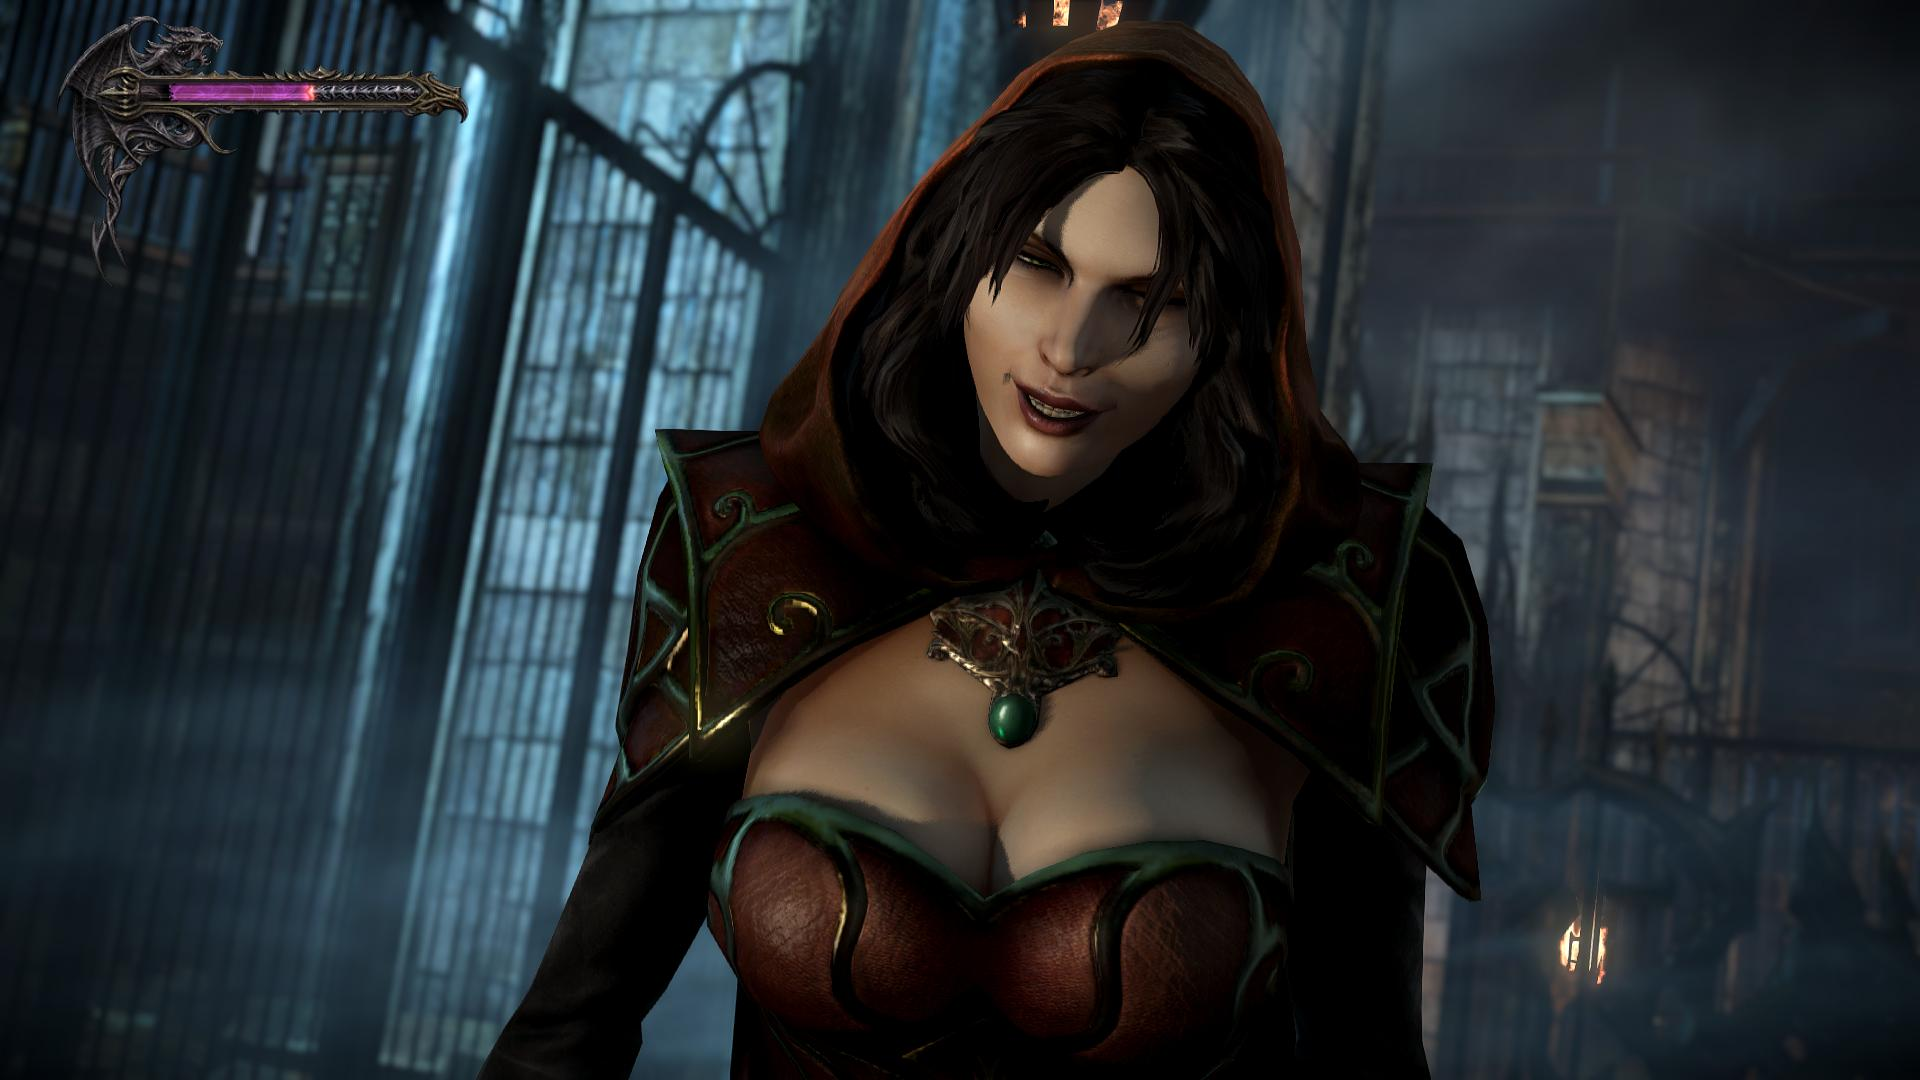 Carmilla in Lords of Shadow 2